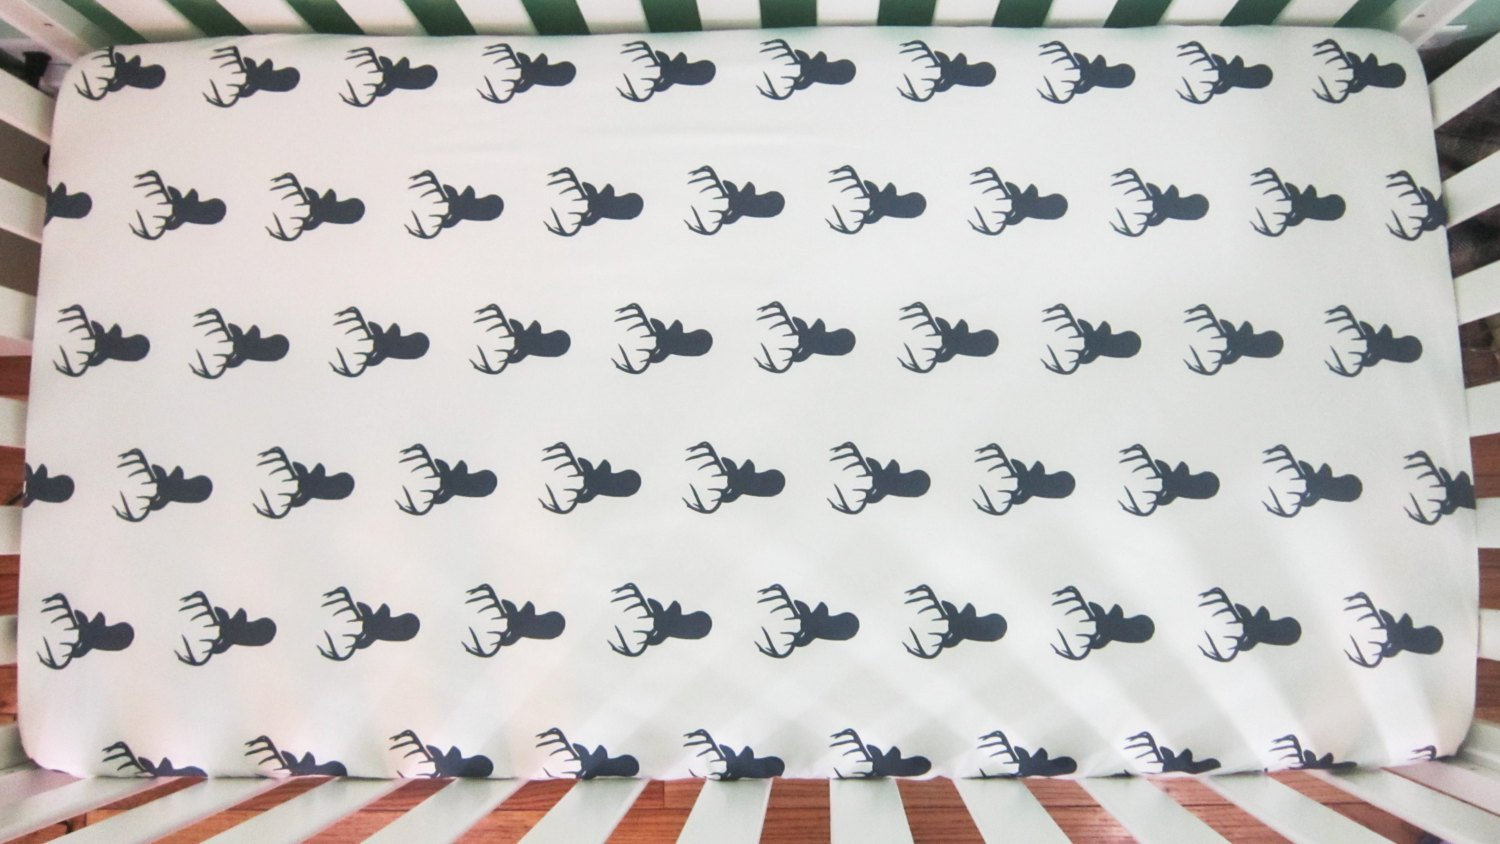 Navy Blue Deer Head Crib Sheet - Orange Blossom Special  @orangeblossomspecial805